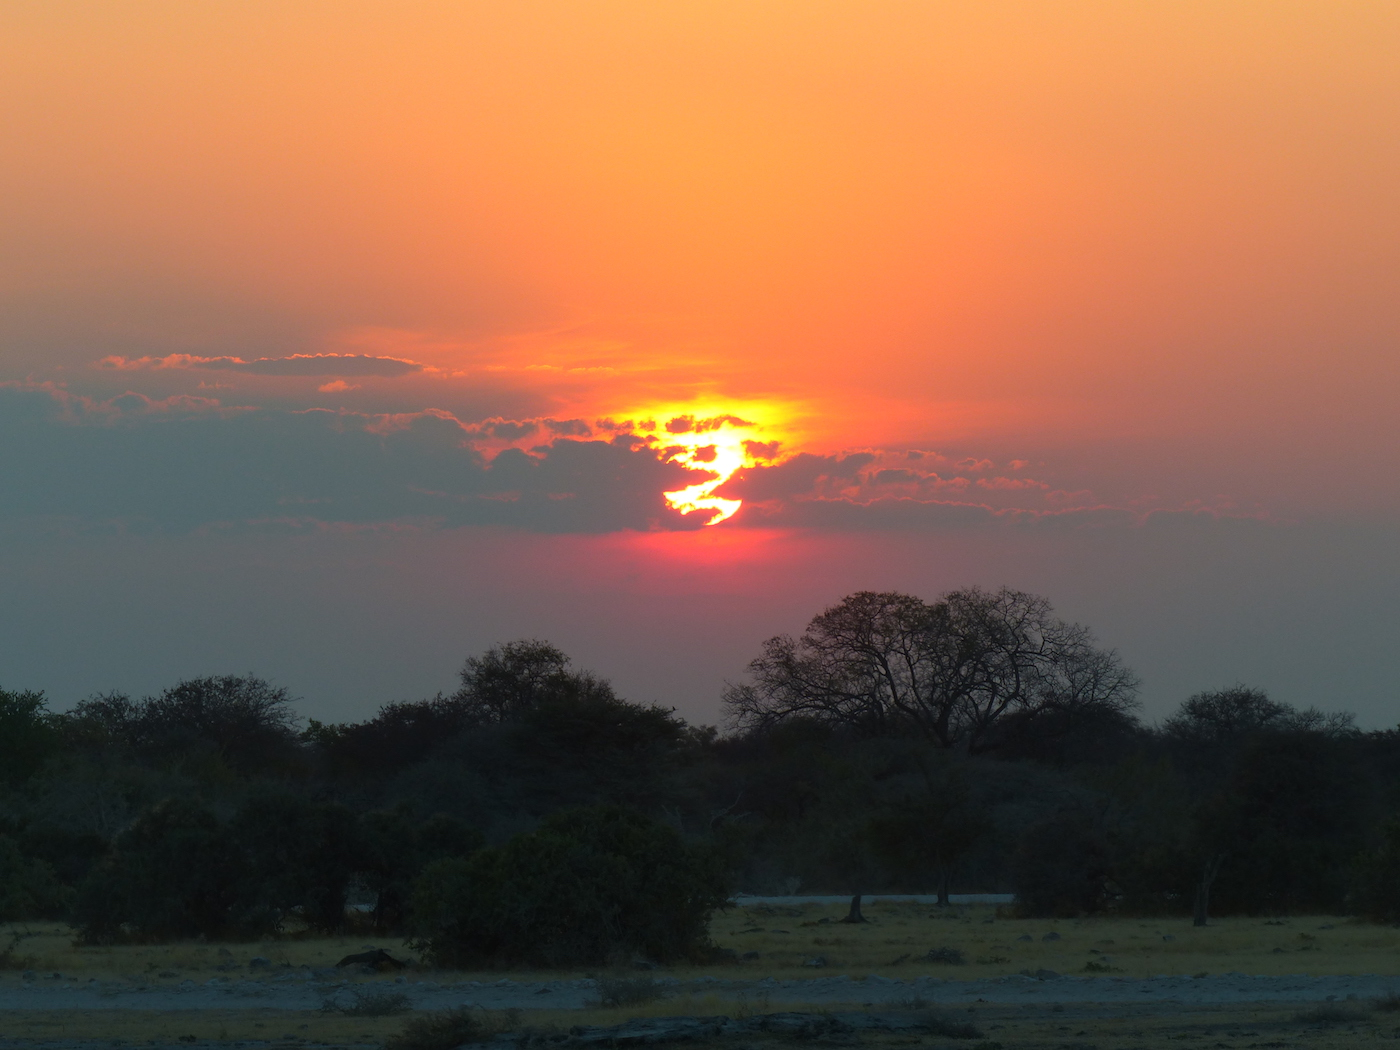 IT IS TIME. THE WORLD IS A BEAUTIFUL PLACE. YOUR VISIT CAN HELP PRESERVE IT. THIS IS ETOSHA NATIONAL PARK IN NAMIBIA. IT PROTECTS ELEPHANTS, LIONS, BLACK AND WHITE RHINO AND SO MUCH MORE. AND IT FILLS YOUR HEART WITH WONDER. IMAGE: LES MEDLEY